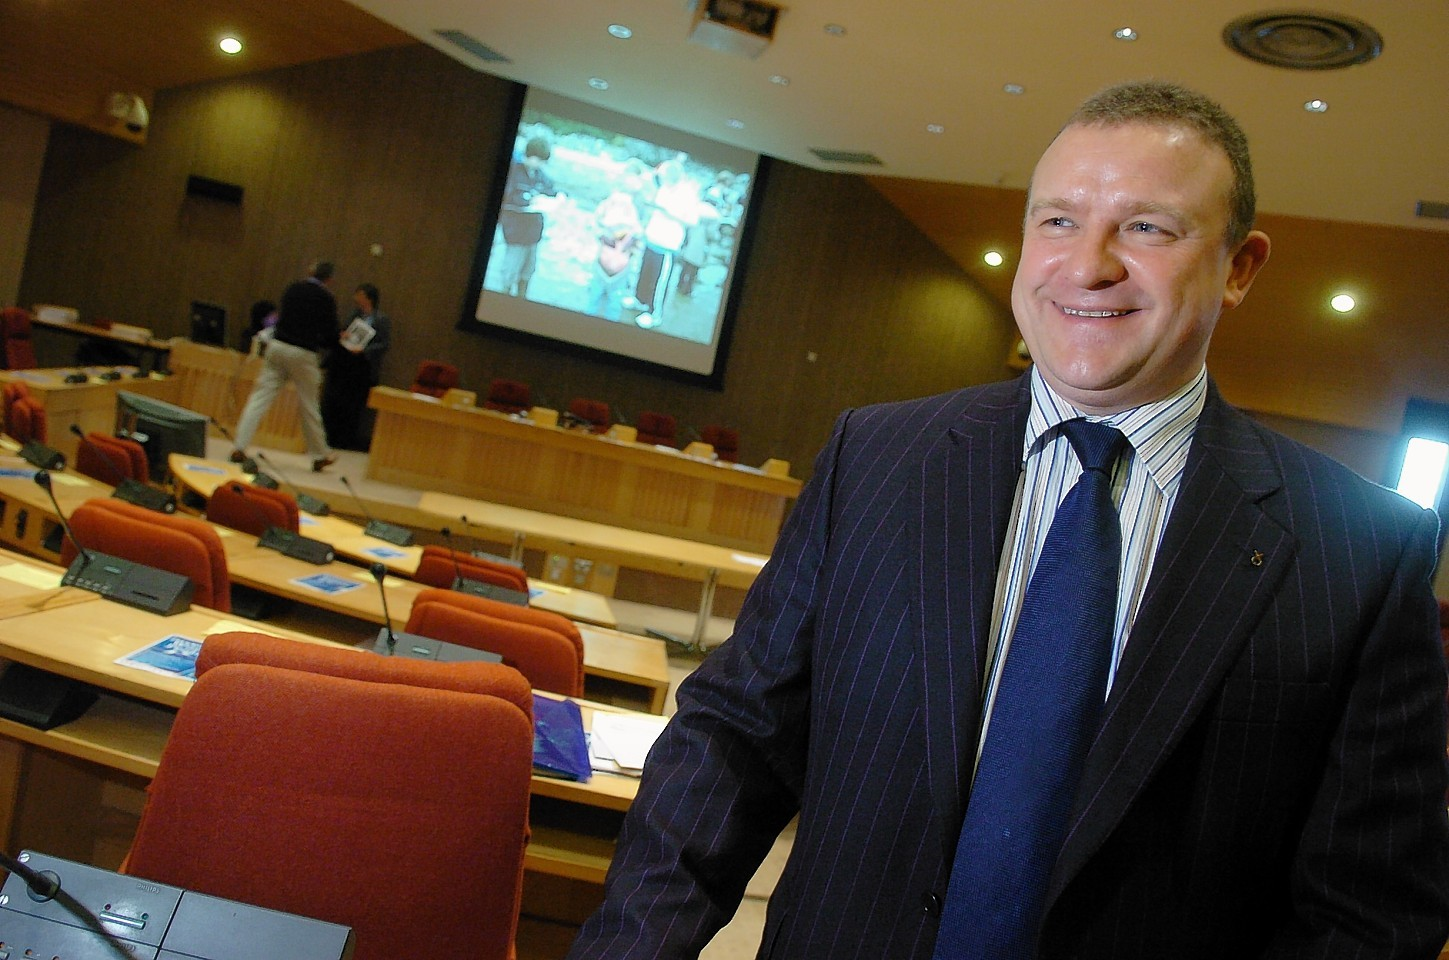 A by-election date has been set for the Aird and Loch Ness ward to replace former council leader Drew Hendry.